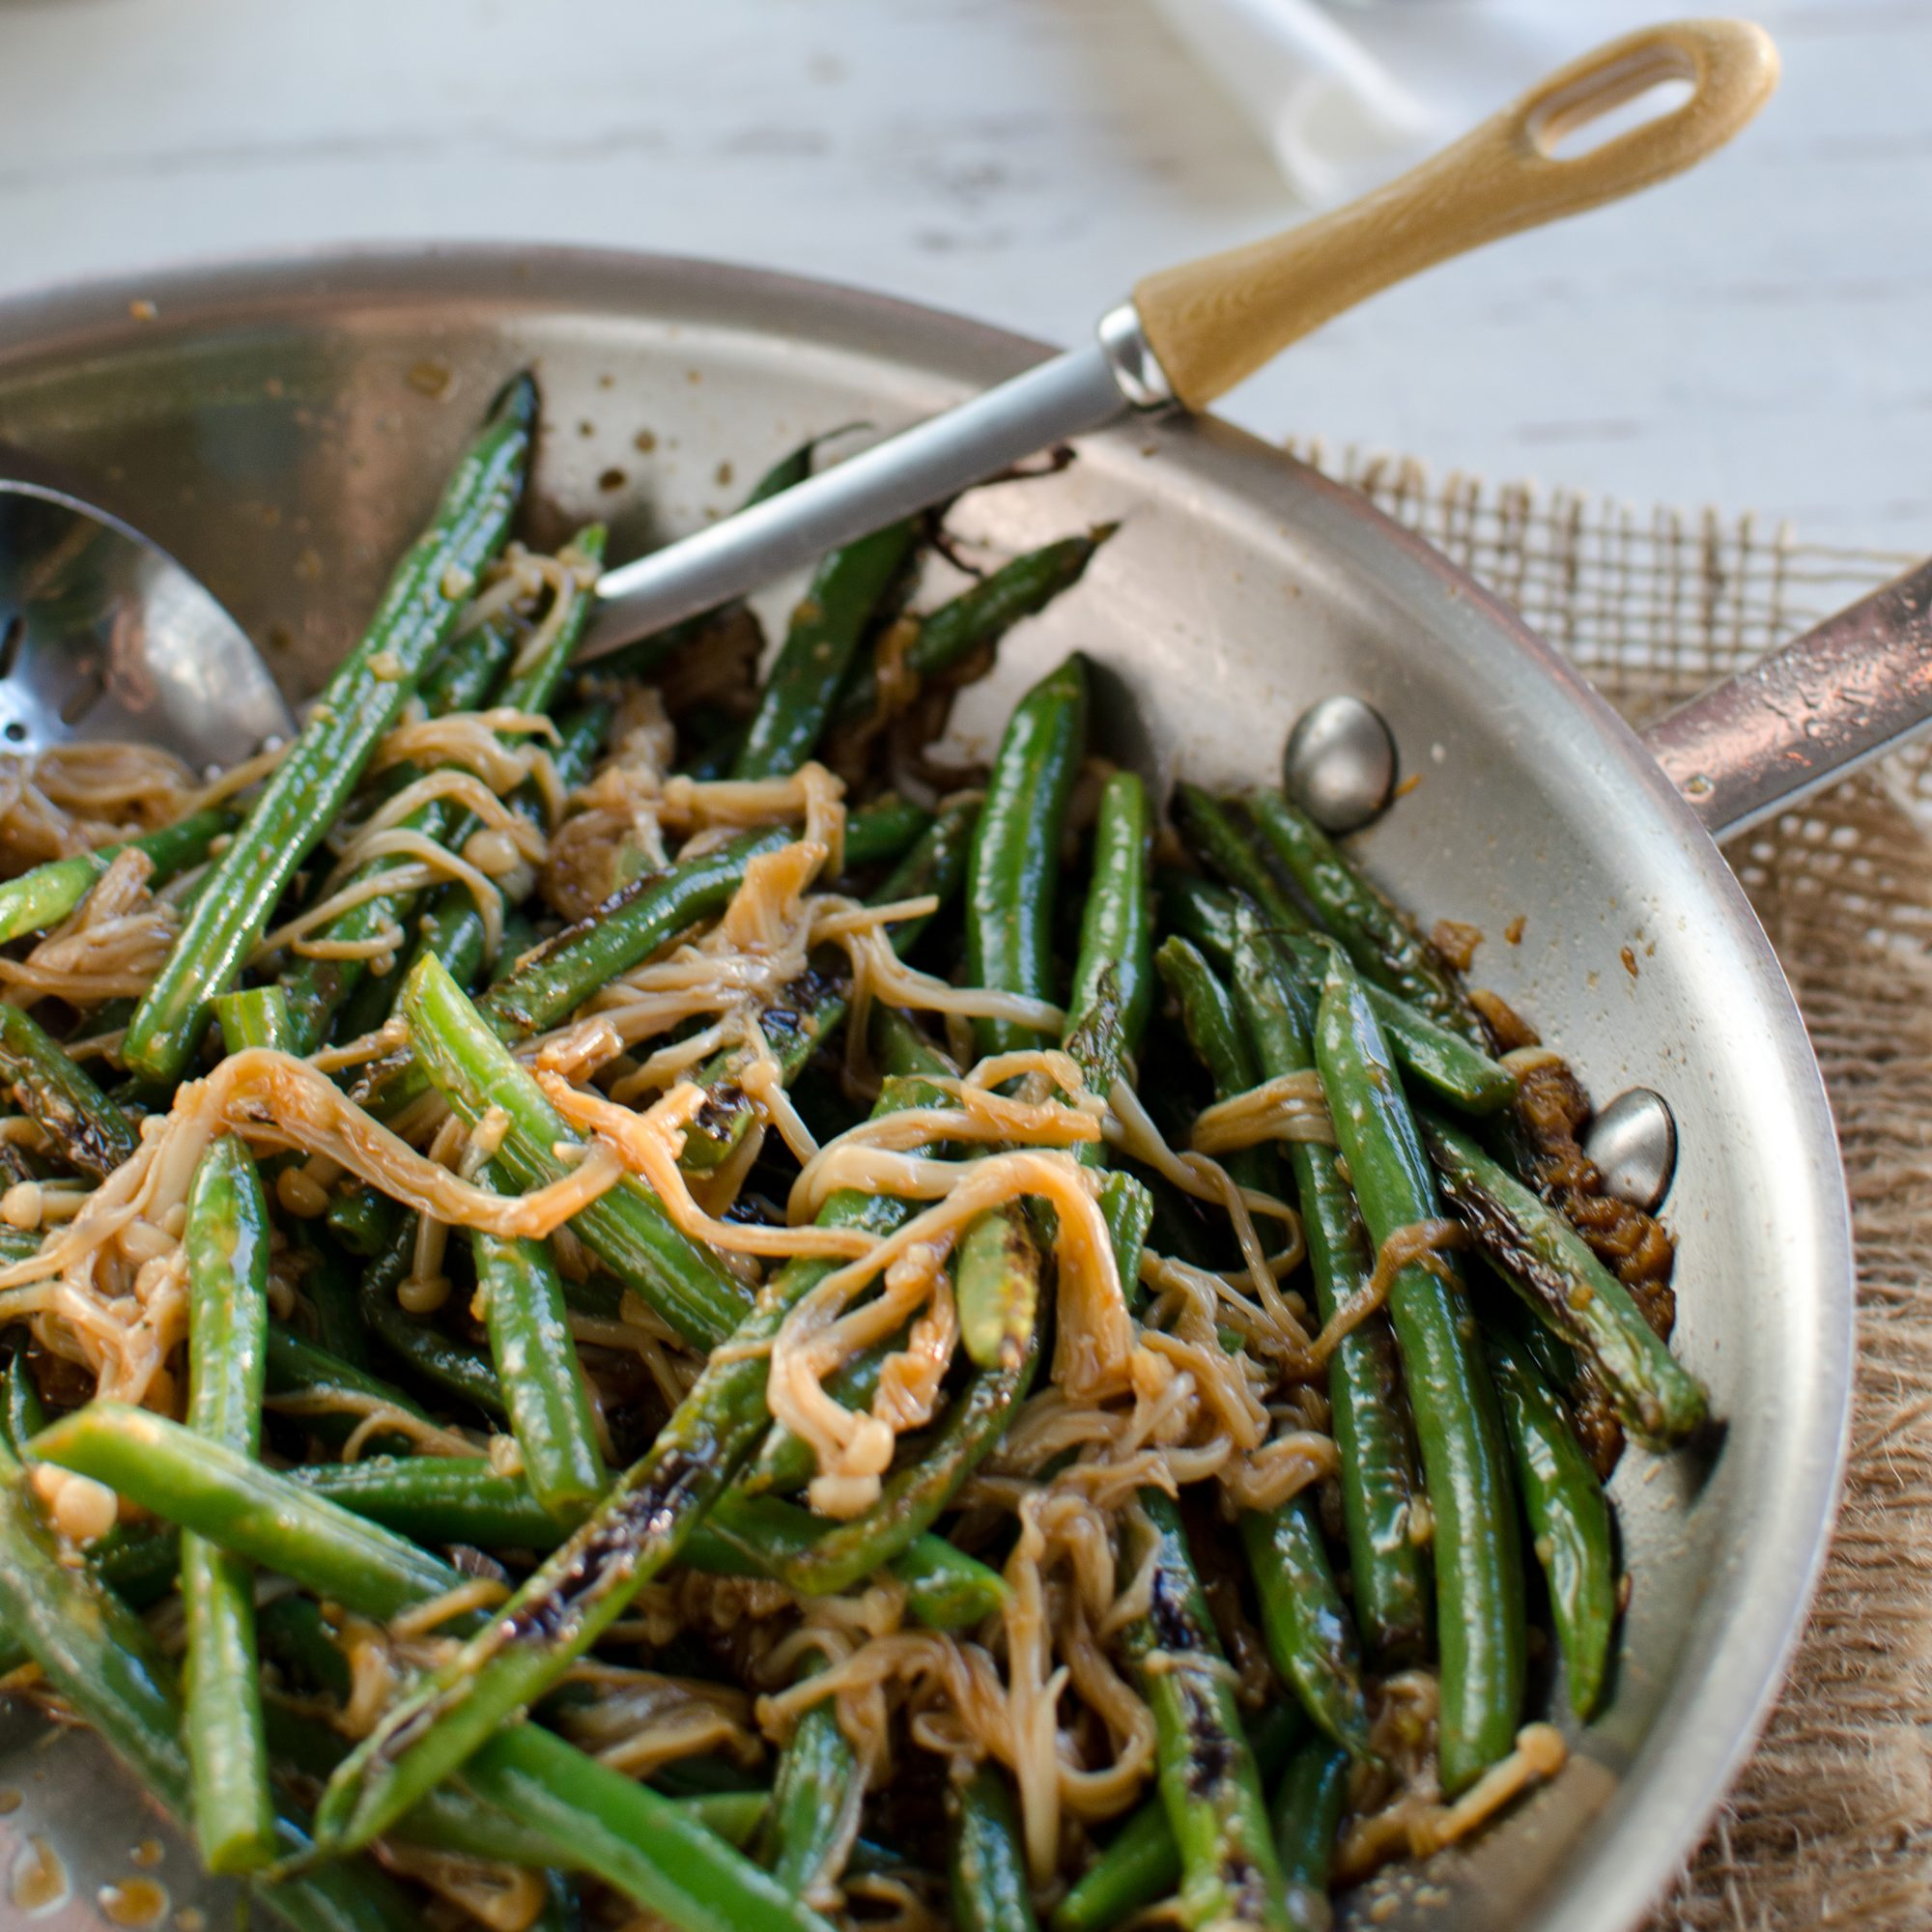 Spicy Green Bean and Enoki Mushroom Stir-Fry with Garlic and Anchovies